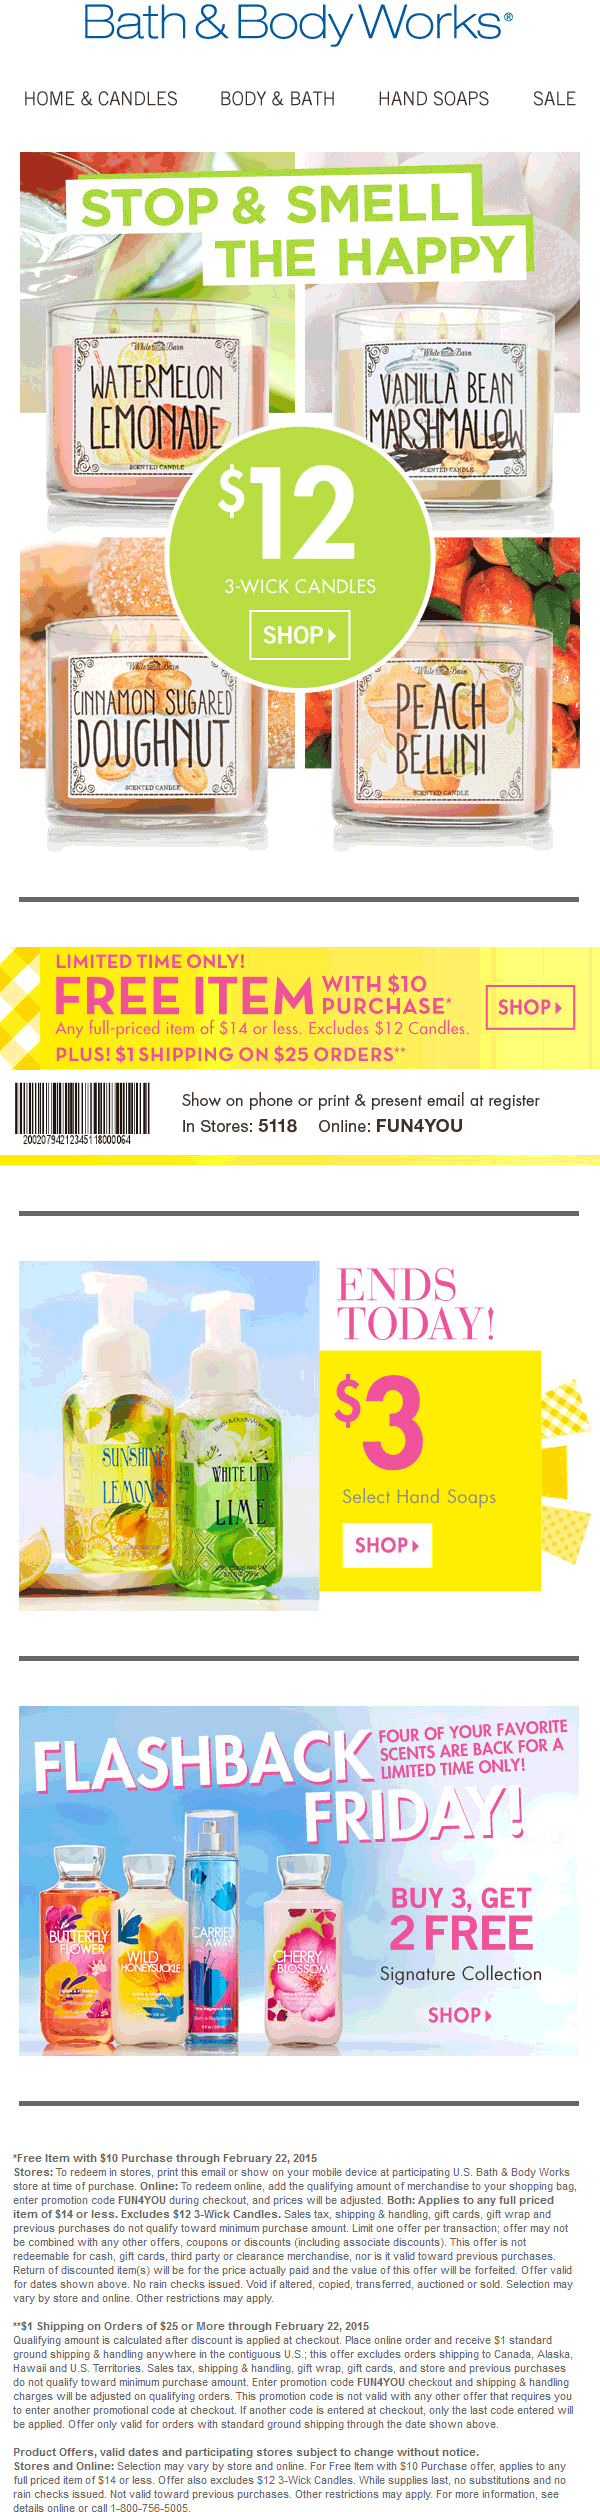 Bath & Body Works Coupon January 2017 Any $14 item free with $10 spent at Bath & Body Works, or online via promo code FUN4YOU